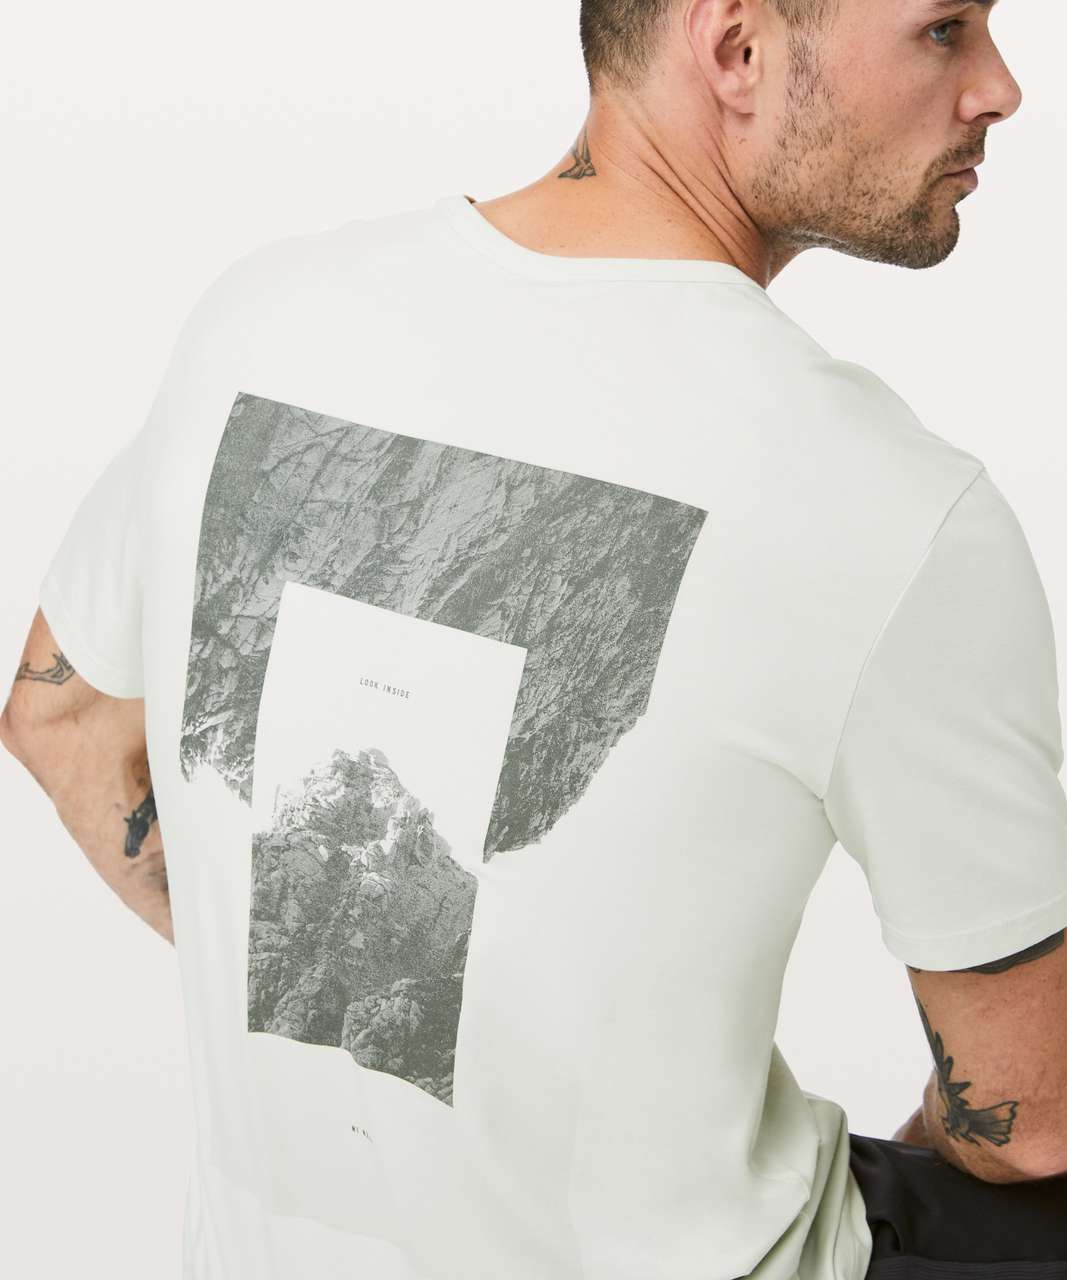 Lululemon 5 Year Basic Tee *Graphic - Ocean Mist